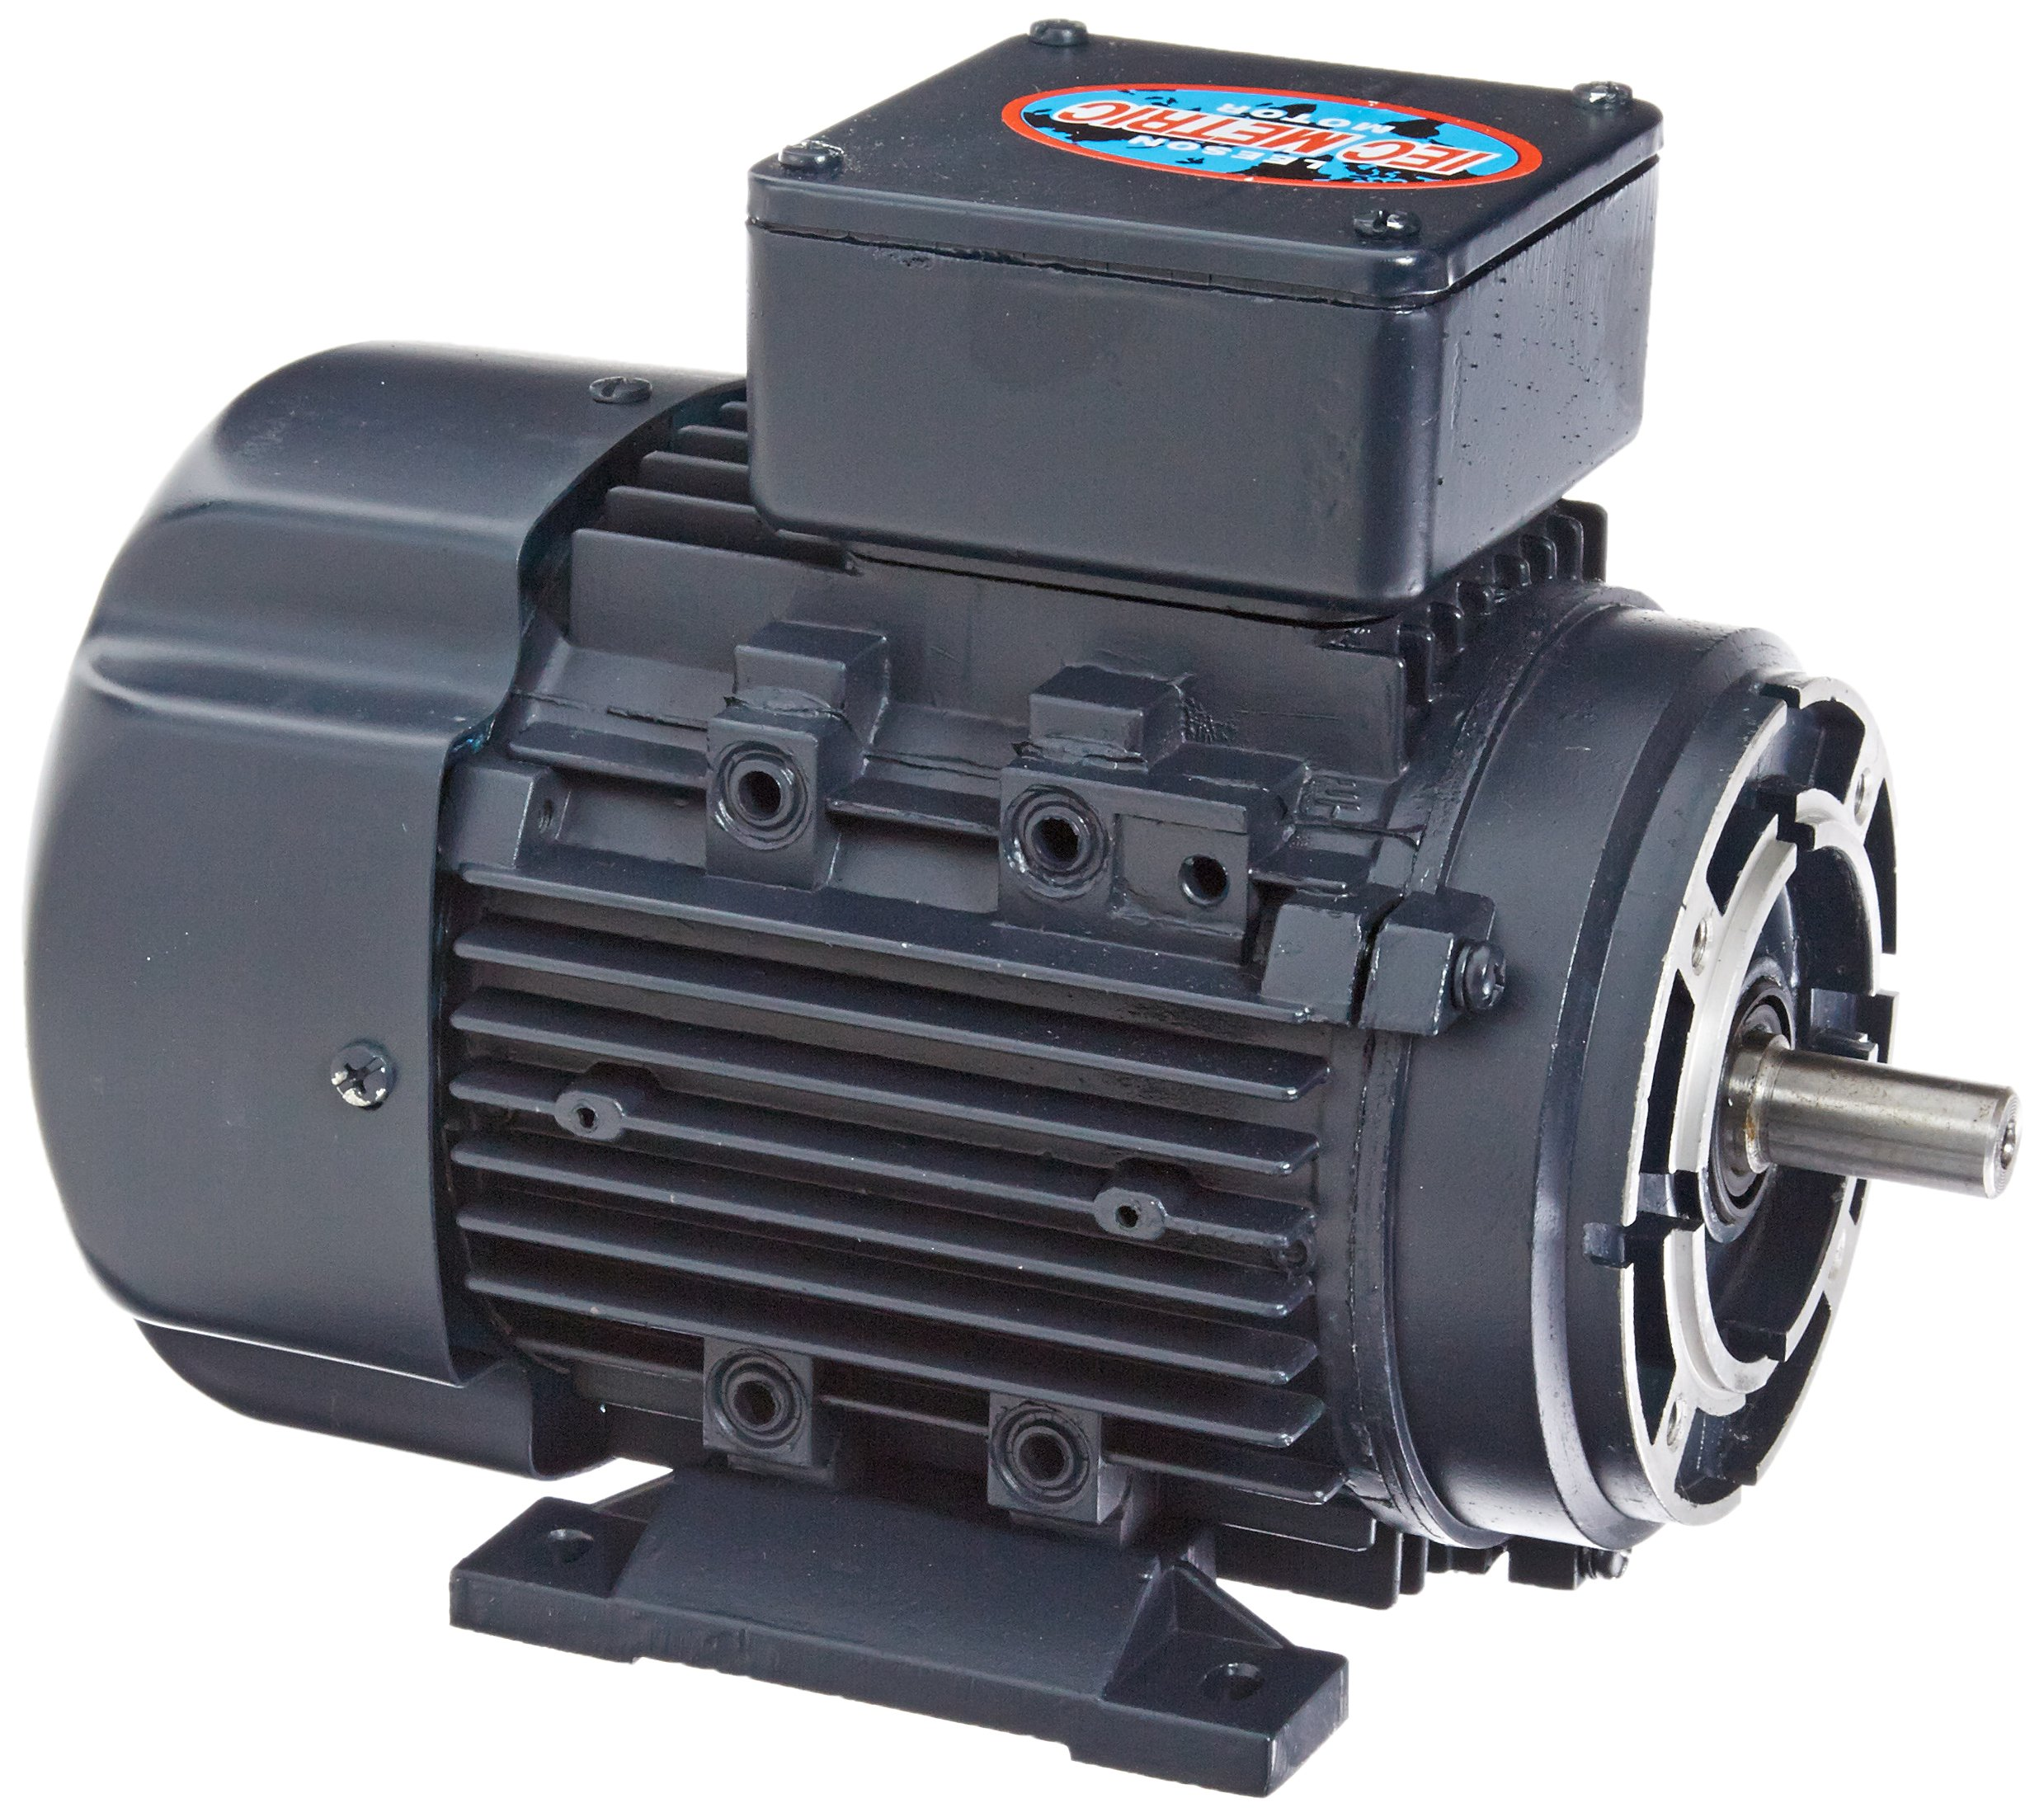 Leeson 192038.00 Rigid Base IEC Metric Motor, 3 Phase, D71C Frame, B3/B14 Mounting, 0.5HP, 1800 RPM, 230/460V Voltage, 60/50Hz Fequency